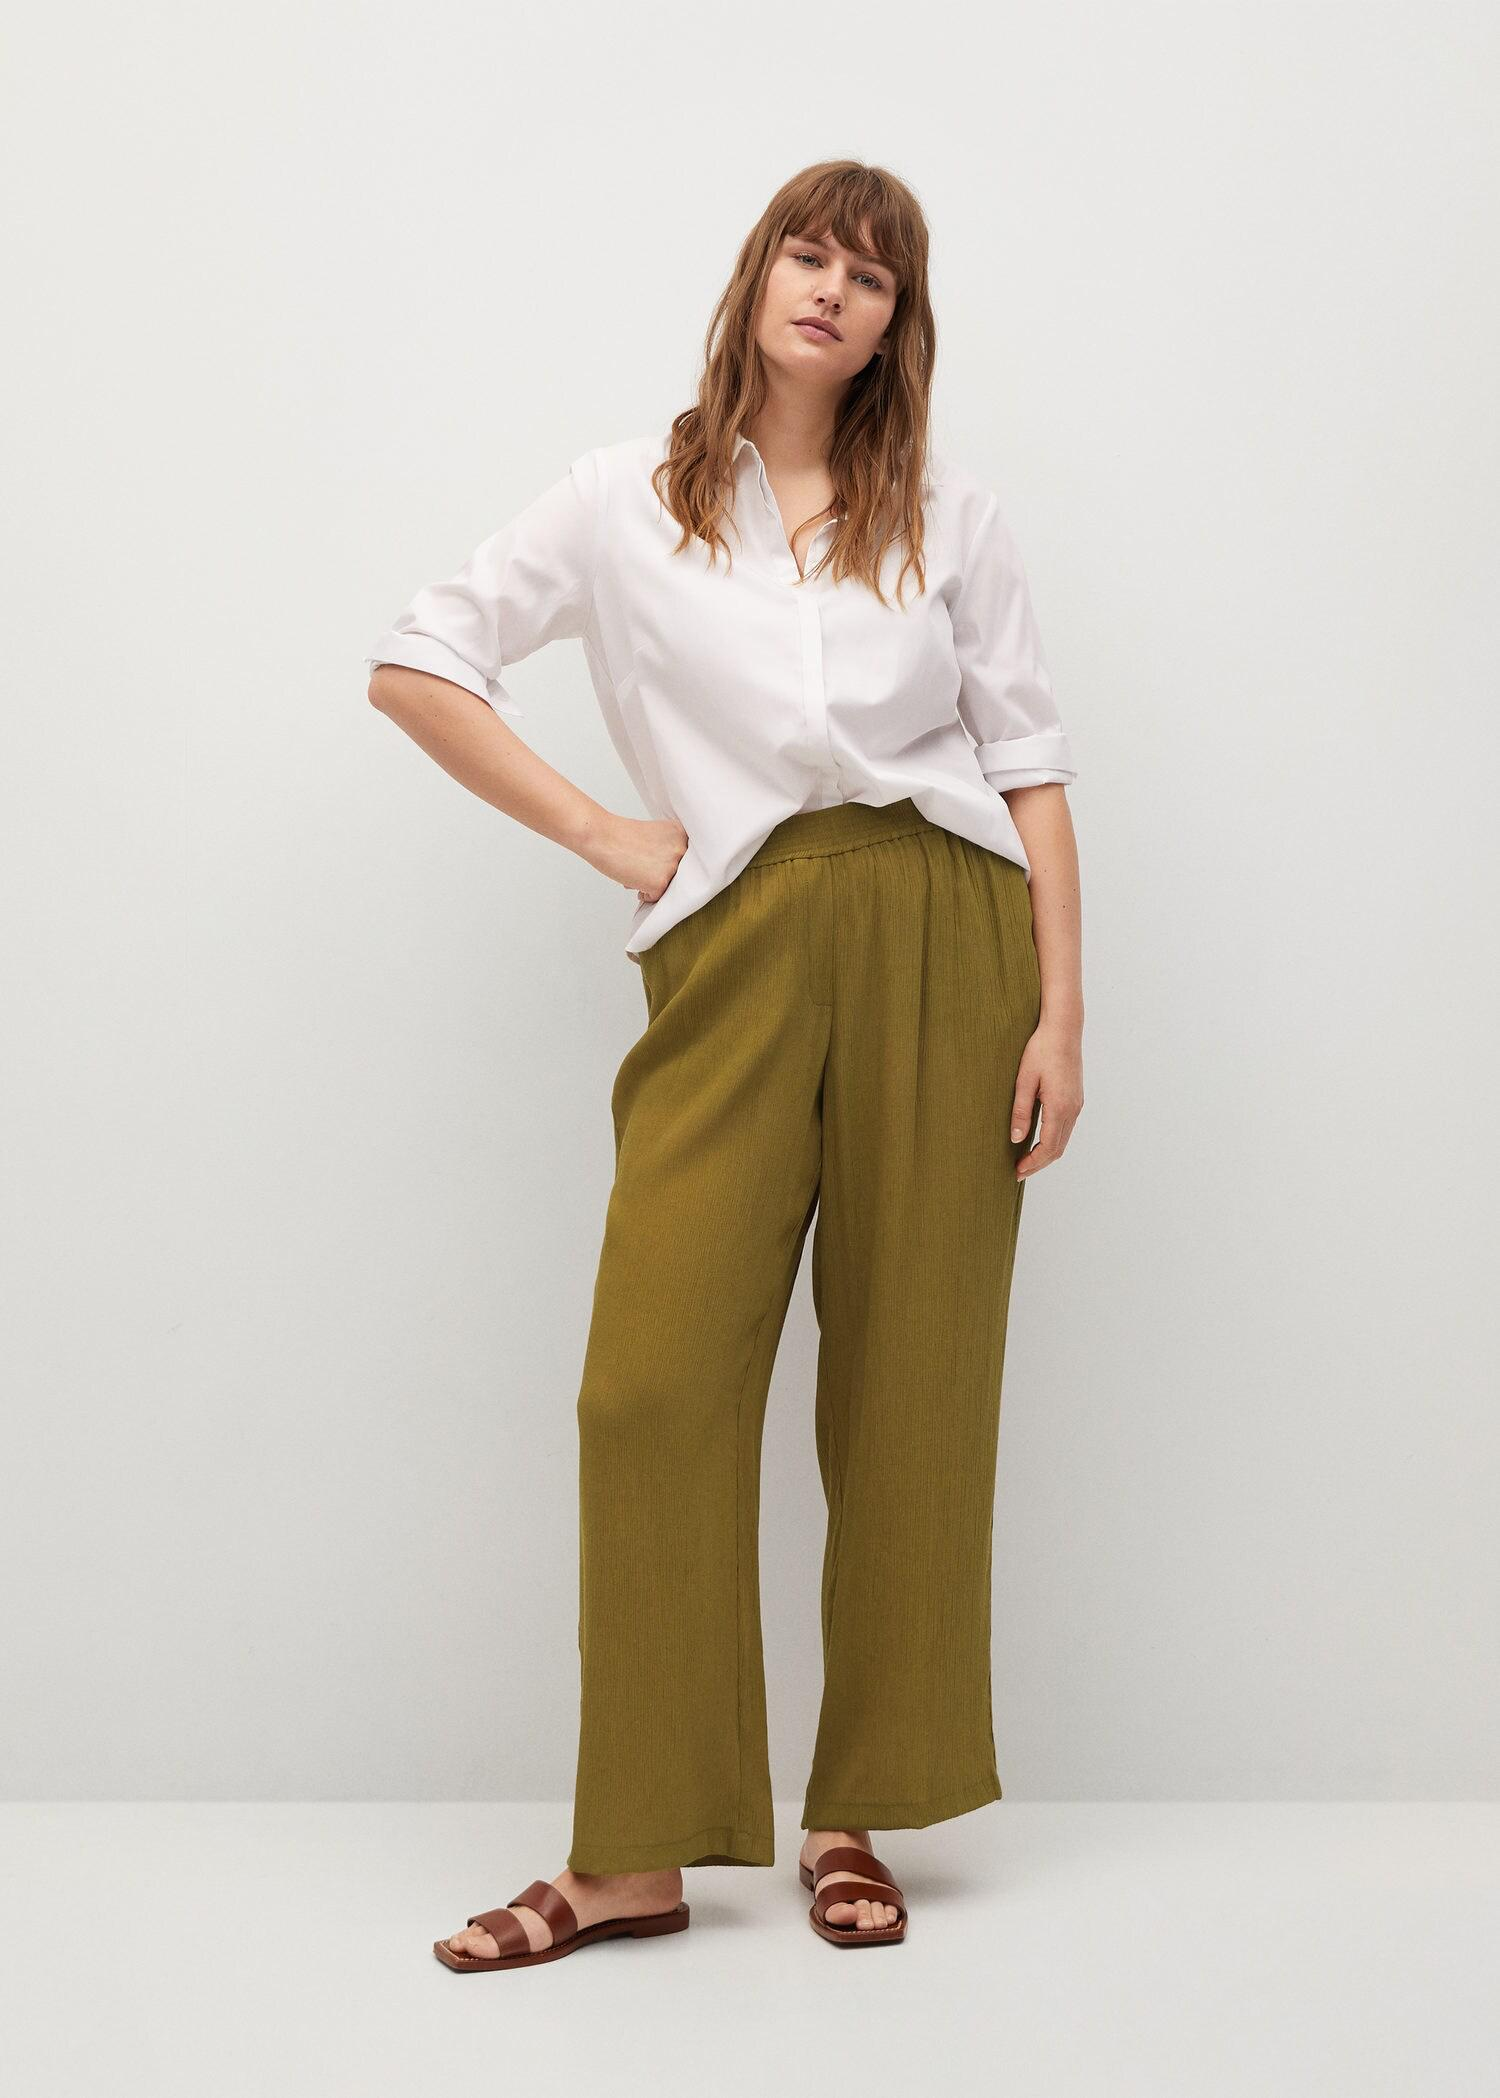 Flowy flared pants